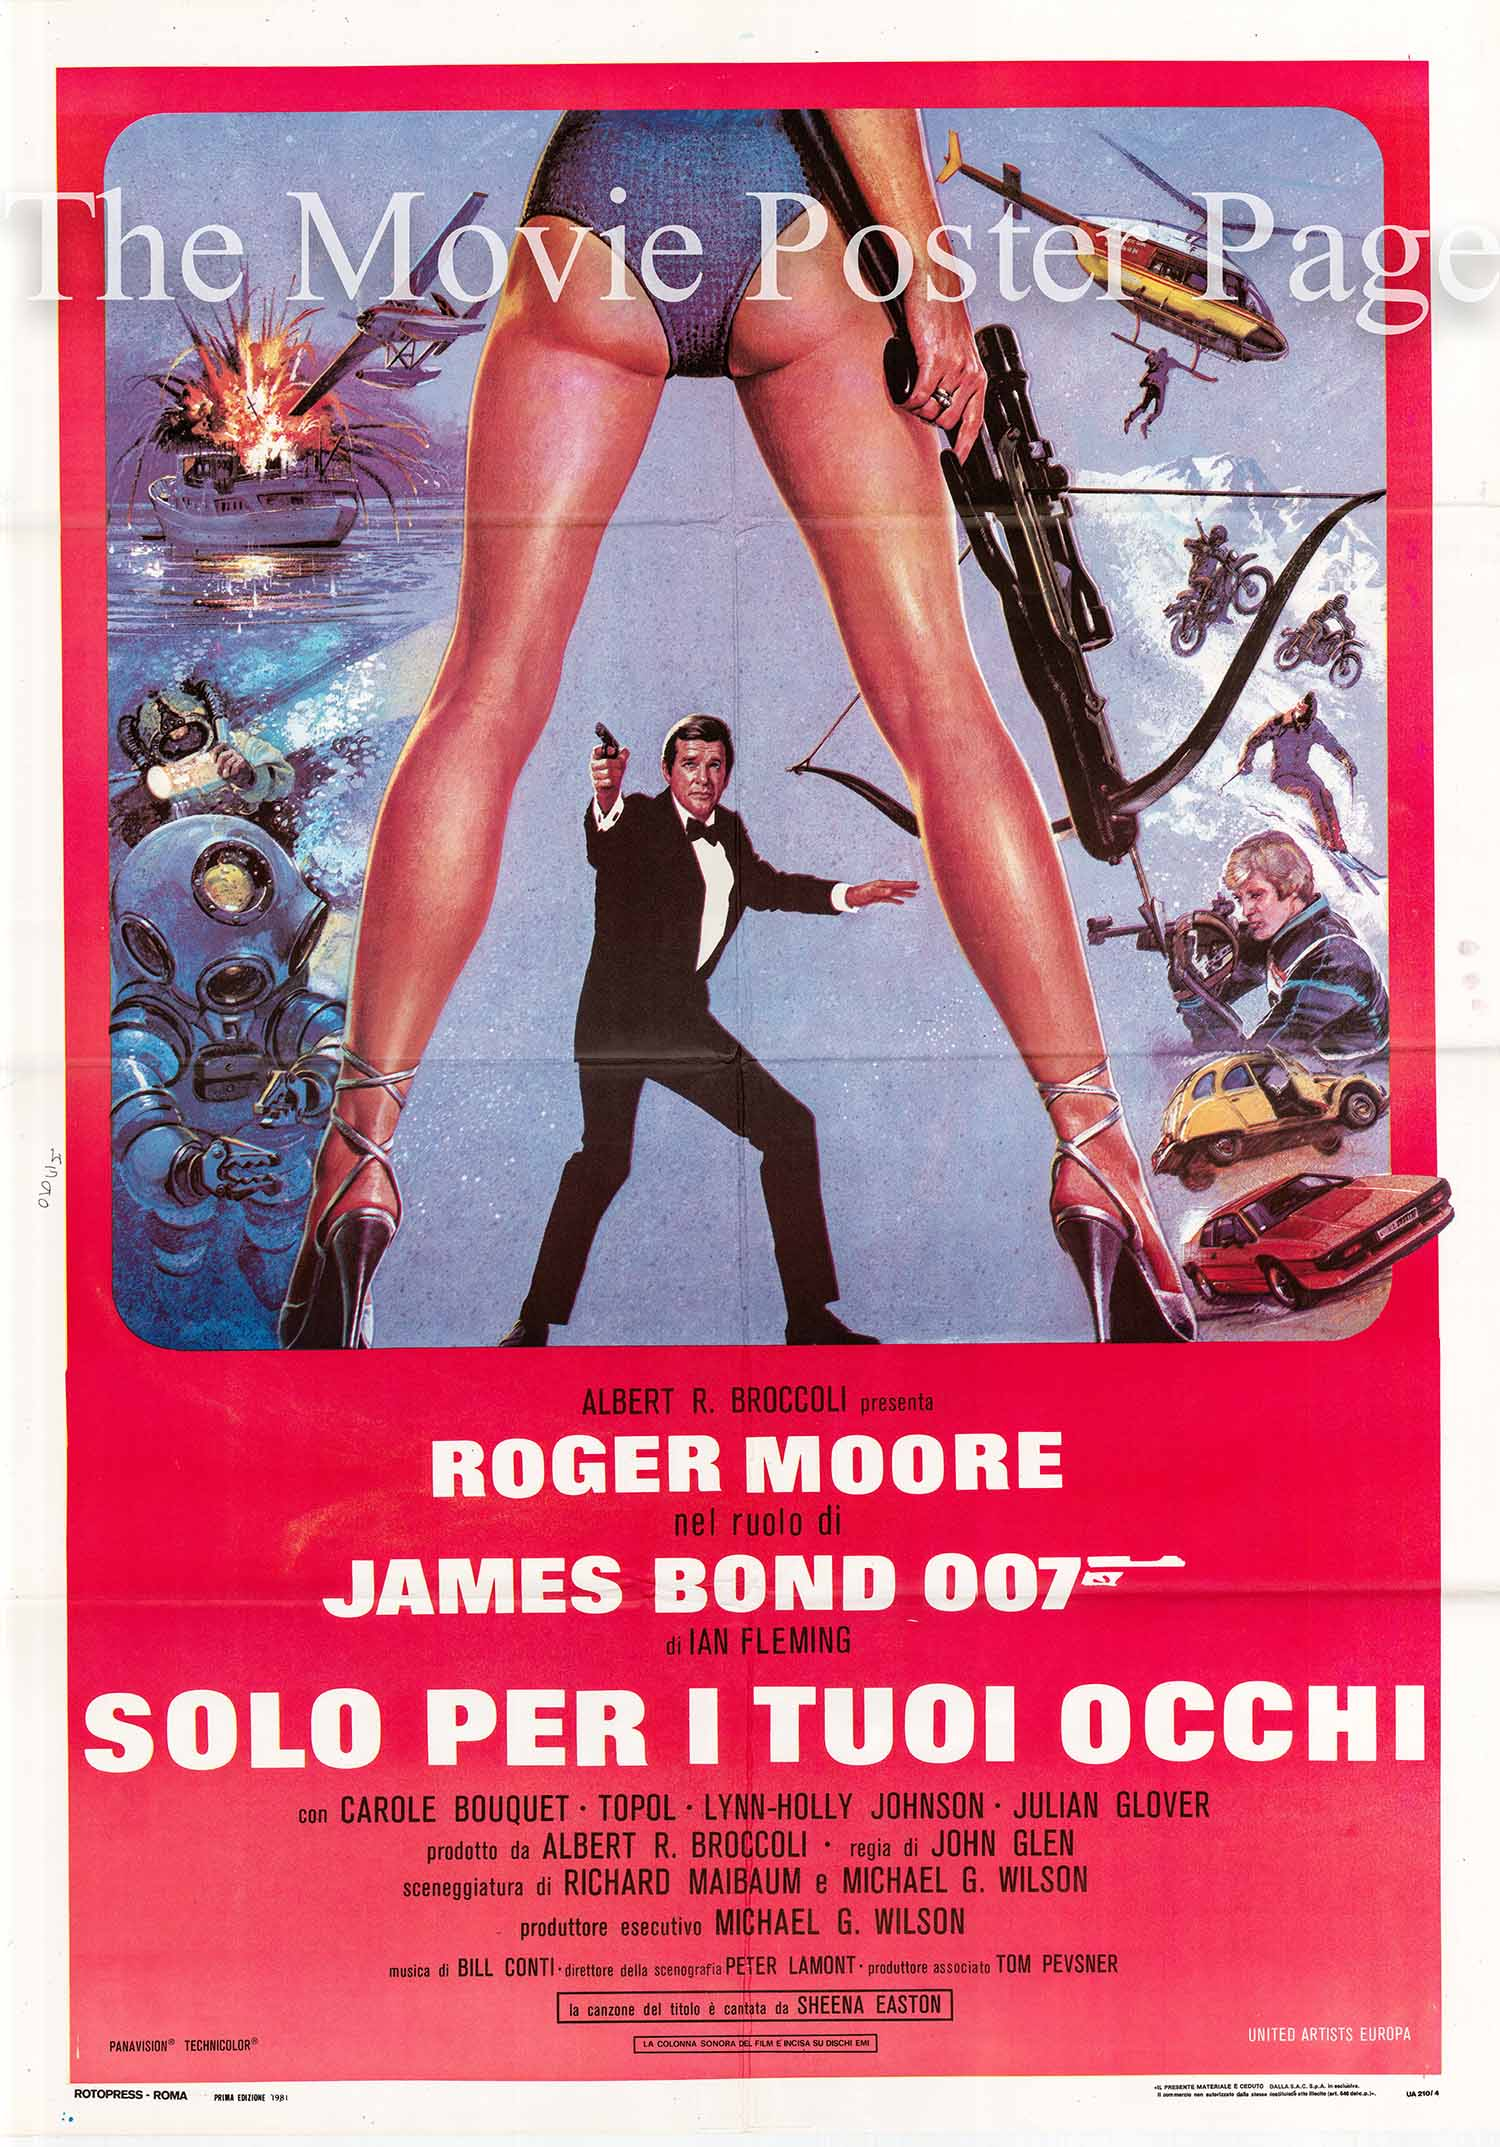 Pictured is an Italian two-sheet promotional poster for the 1981 John Glen film For Your Eyes Only starring Roger Moore as James Bond.